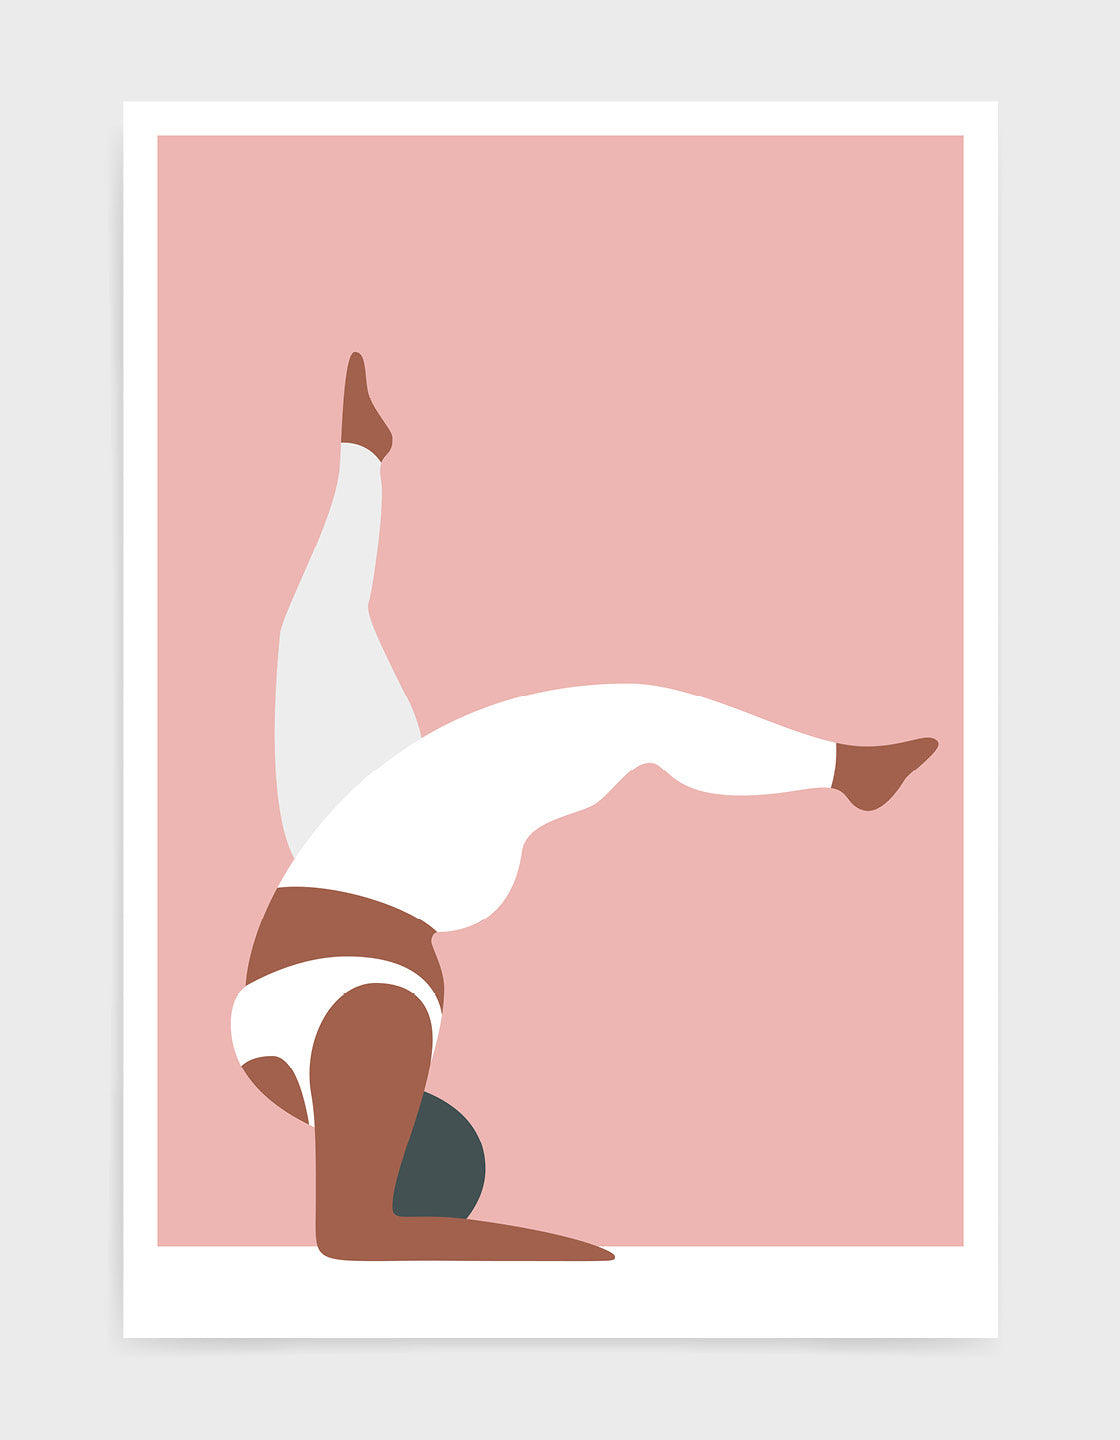 Yoga pose print of a larger lady in a handstand pose with split legs against a pink background